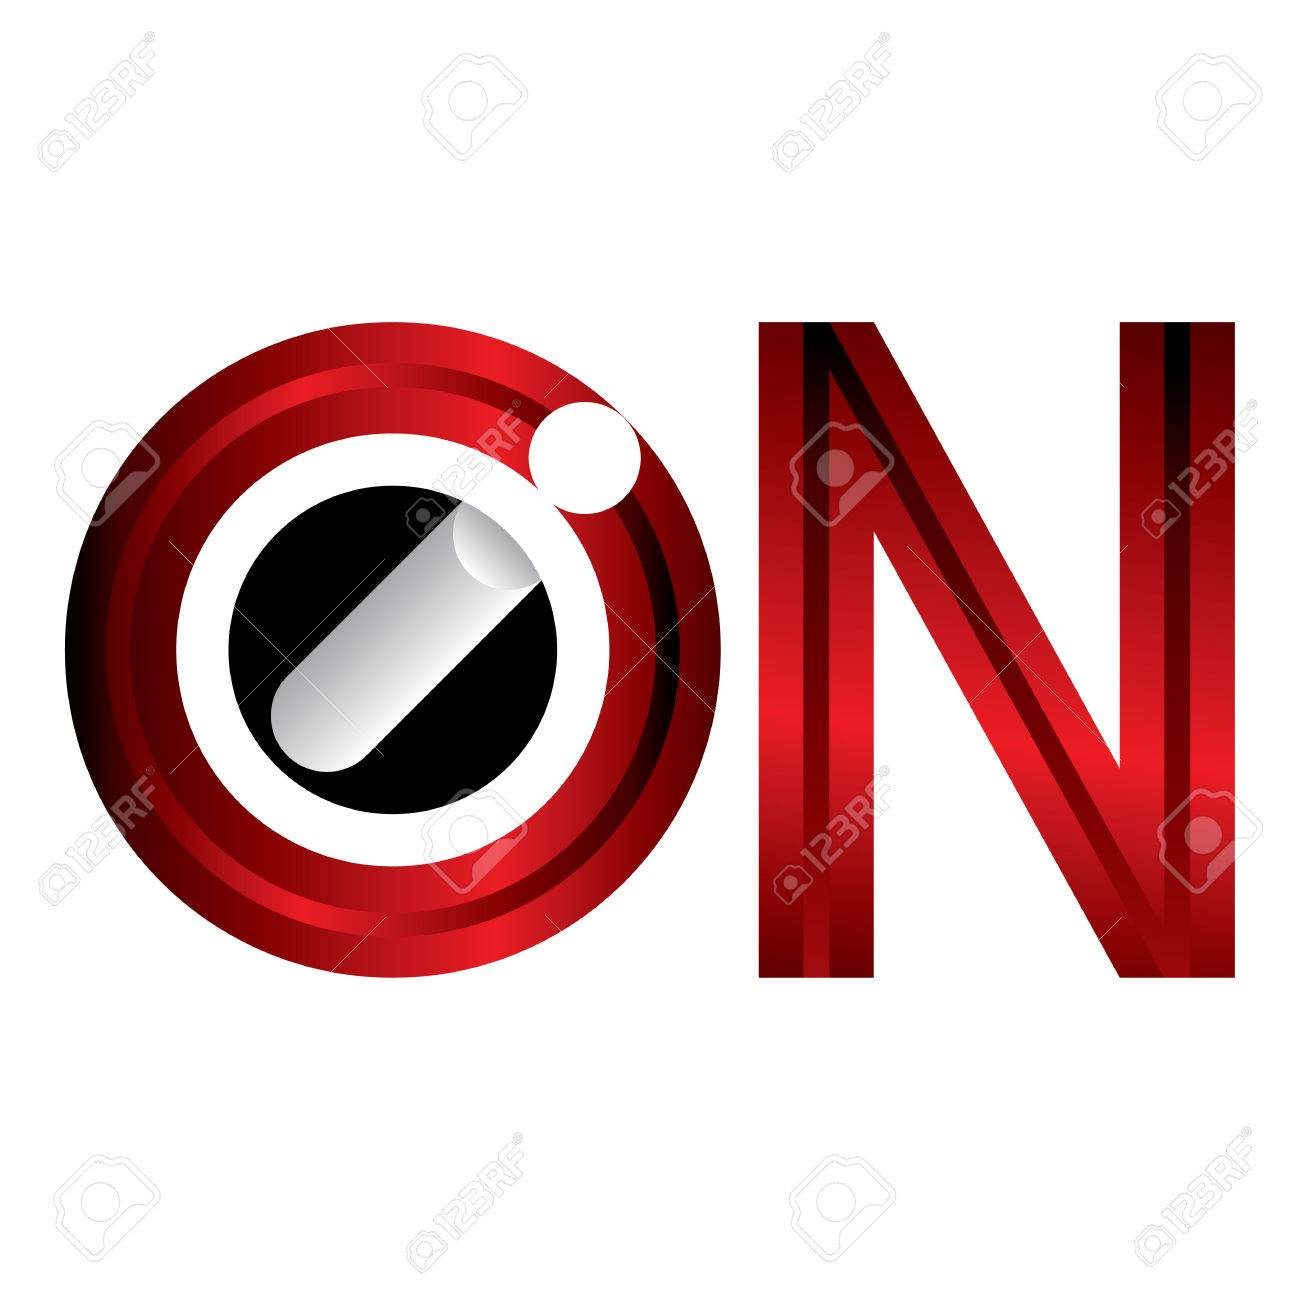 Icon symbol load ion word ideal for visual communication icon symbol load ion word ideal for visual communication informative and institutional materials stock biocorpaavc Images